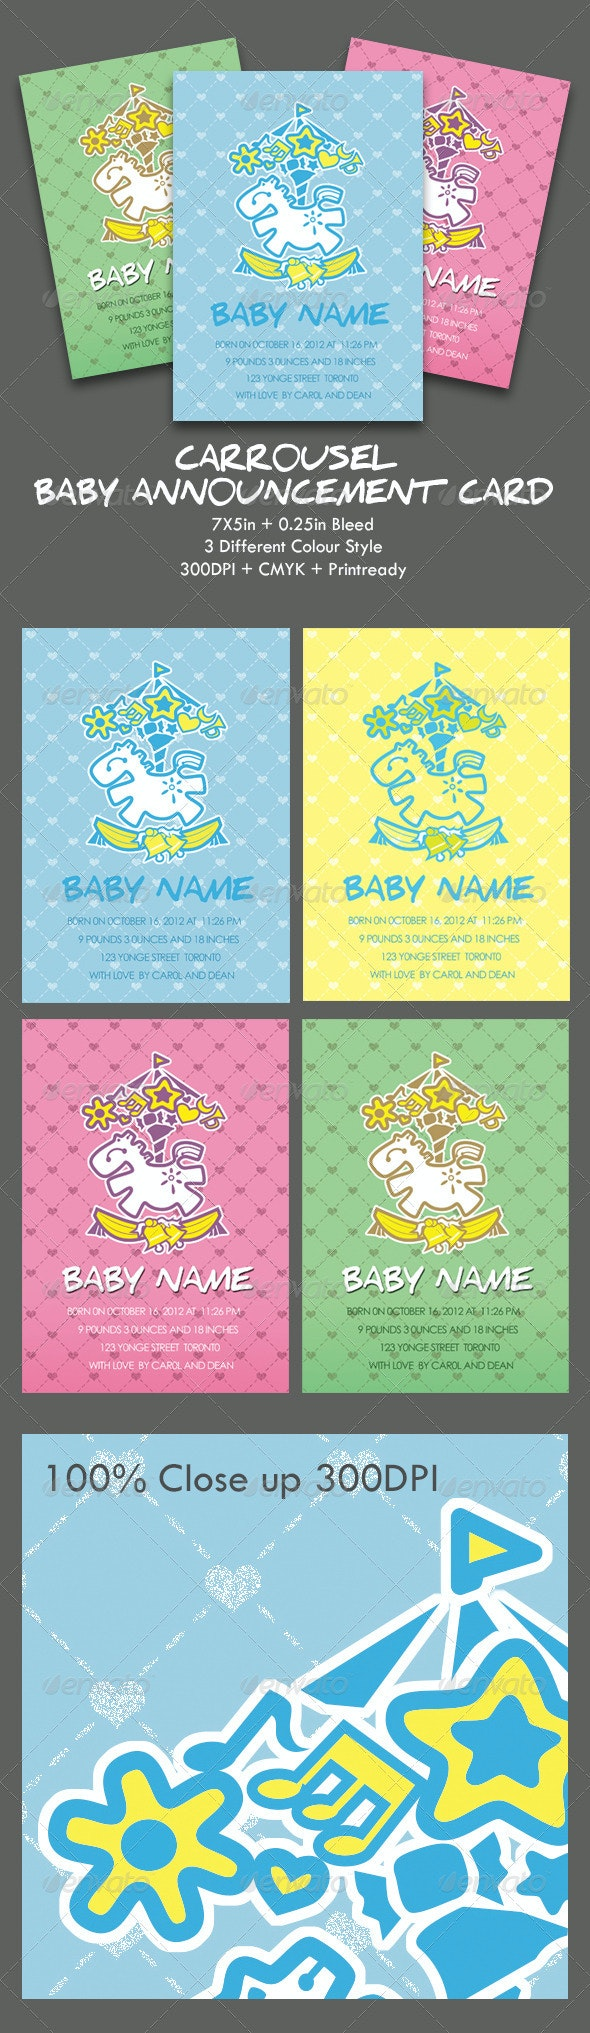 Carrousel Baby Announcement Card - Family Cards & Invites